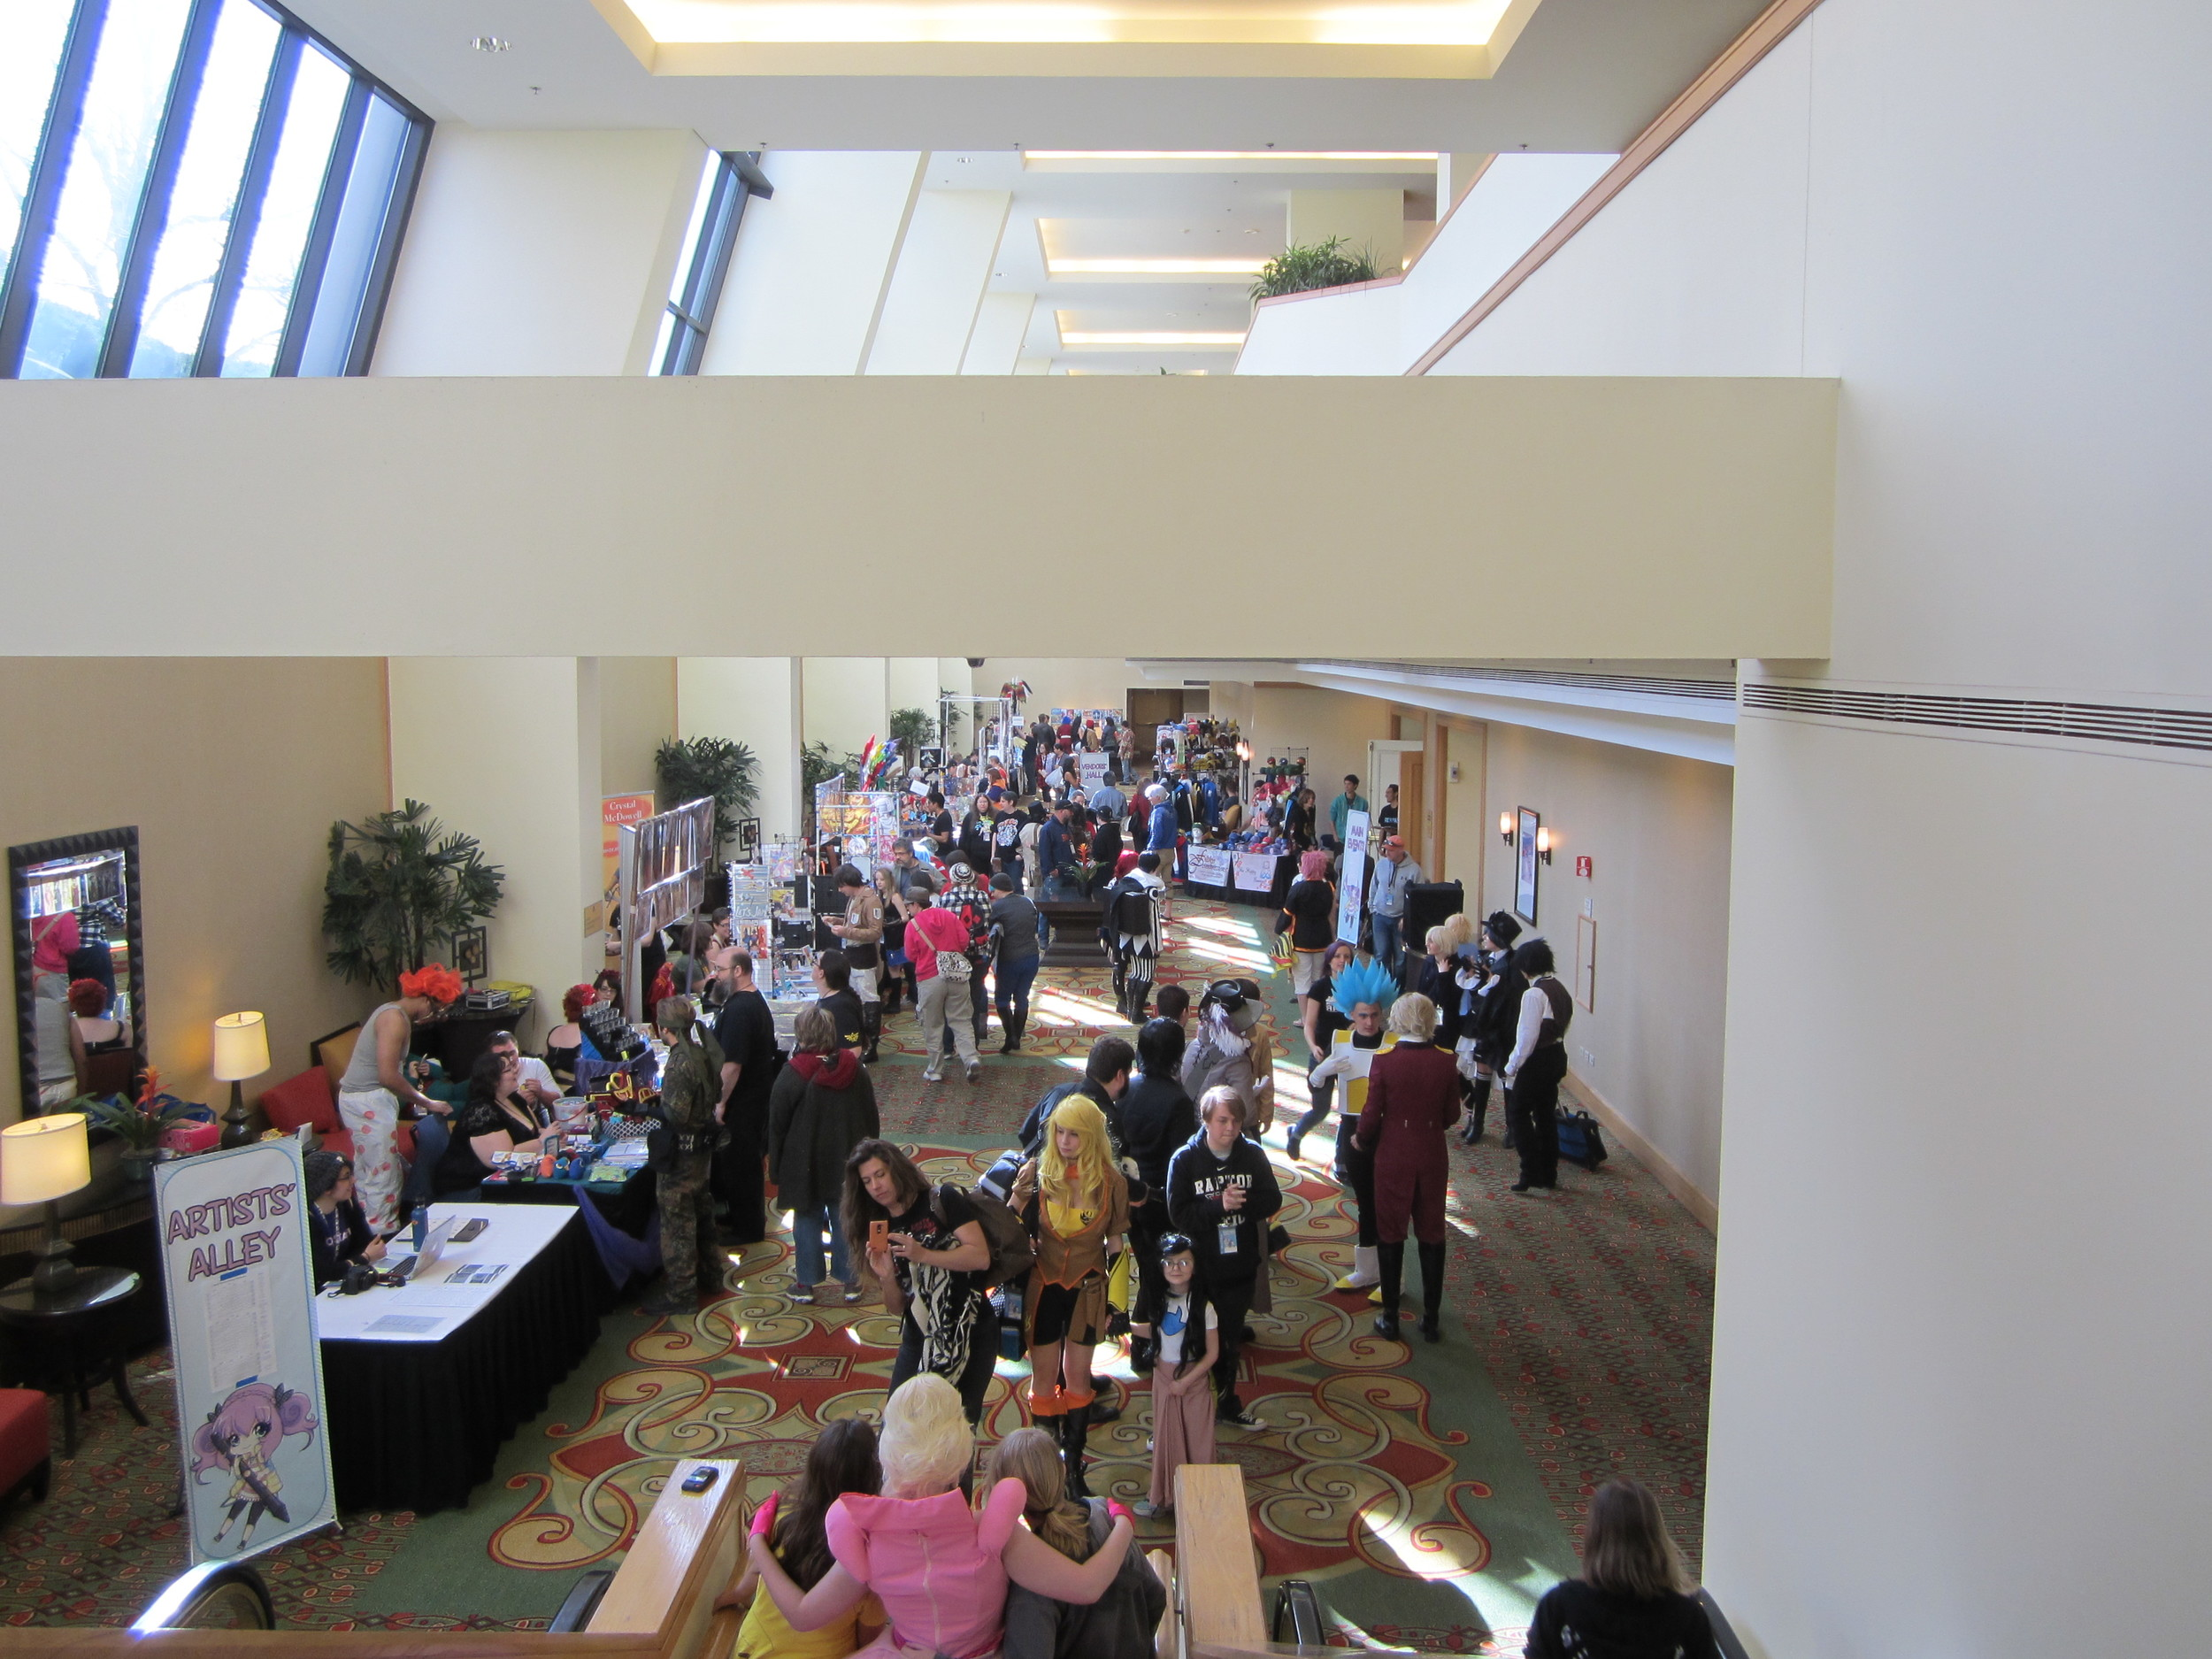 Artist alley and the convention floor.